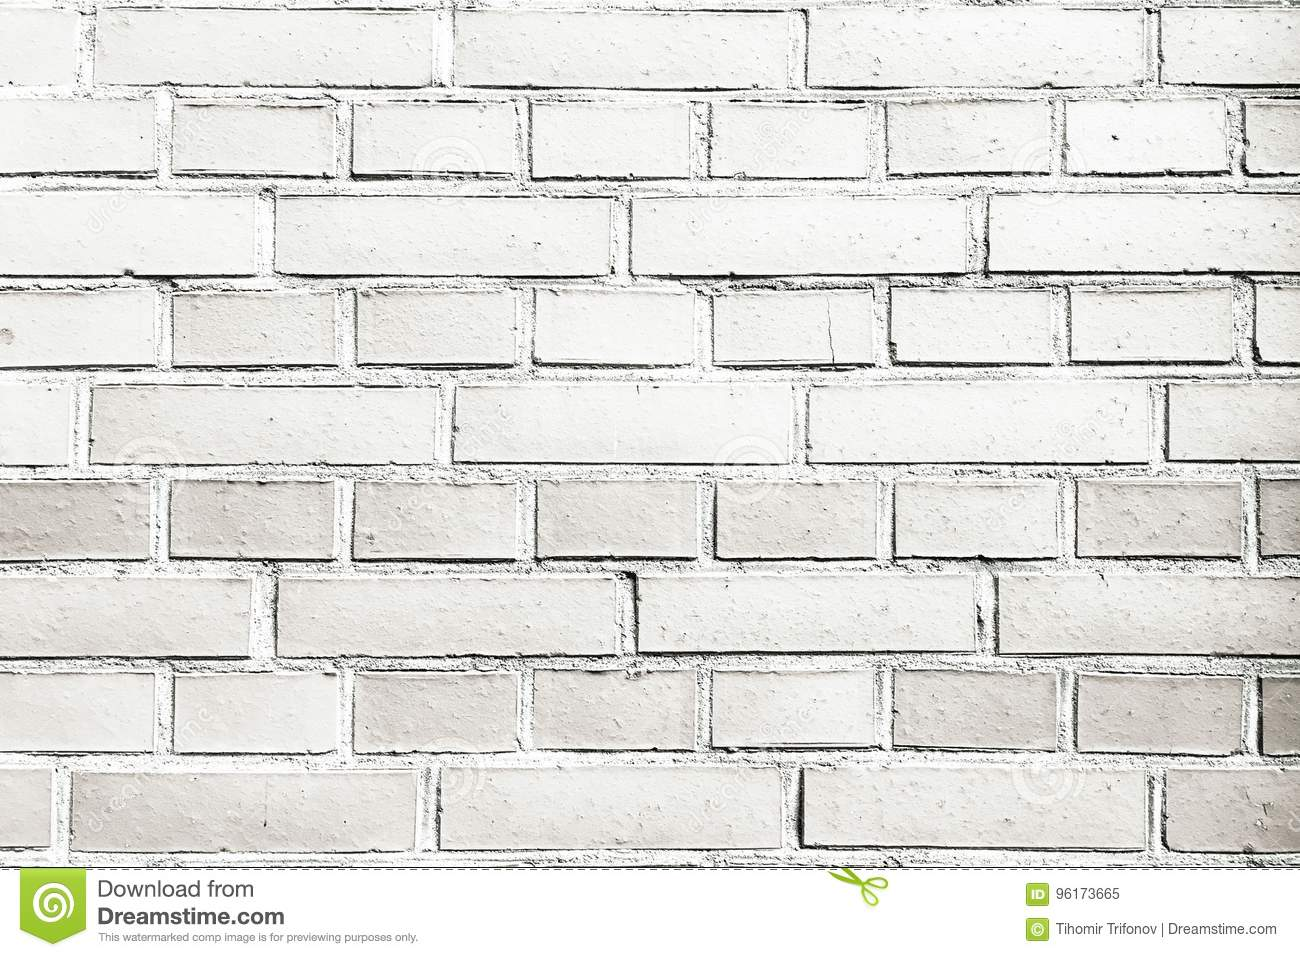 Brick wall texture white brick wall background white brick wall for interior or exterior